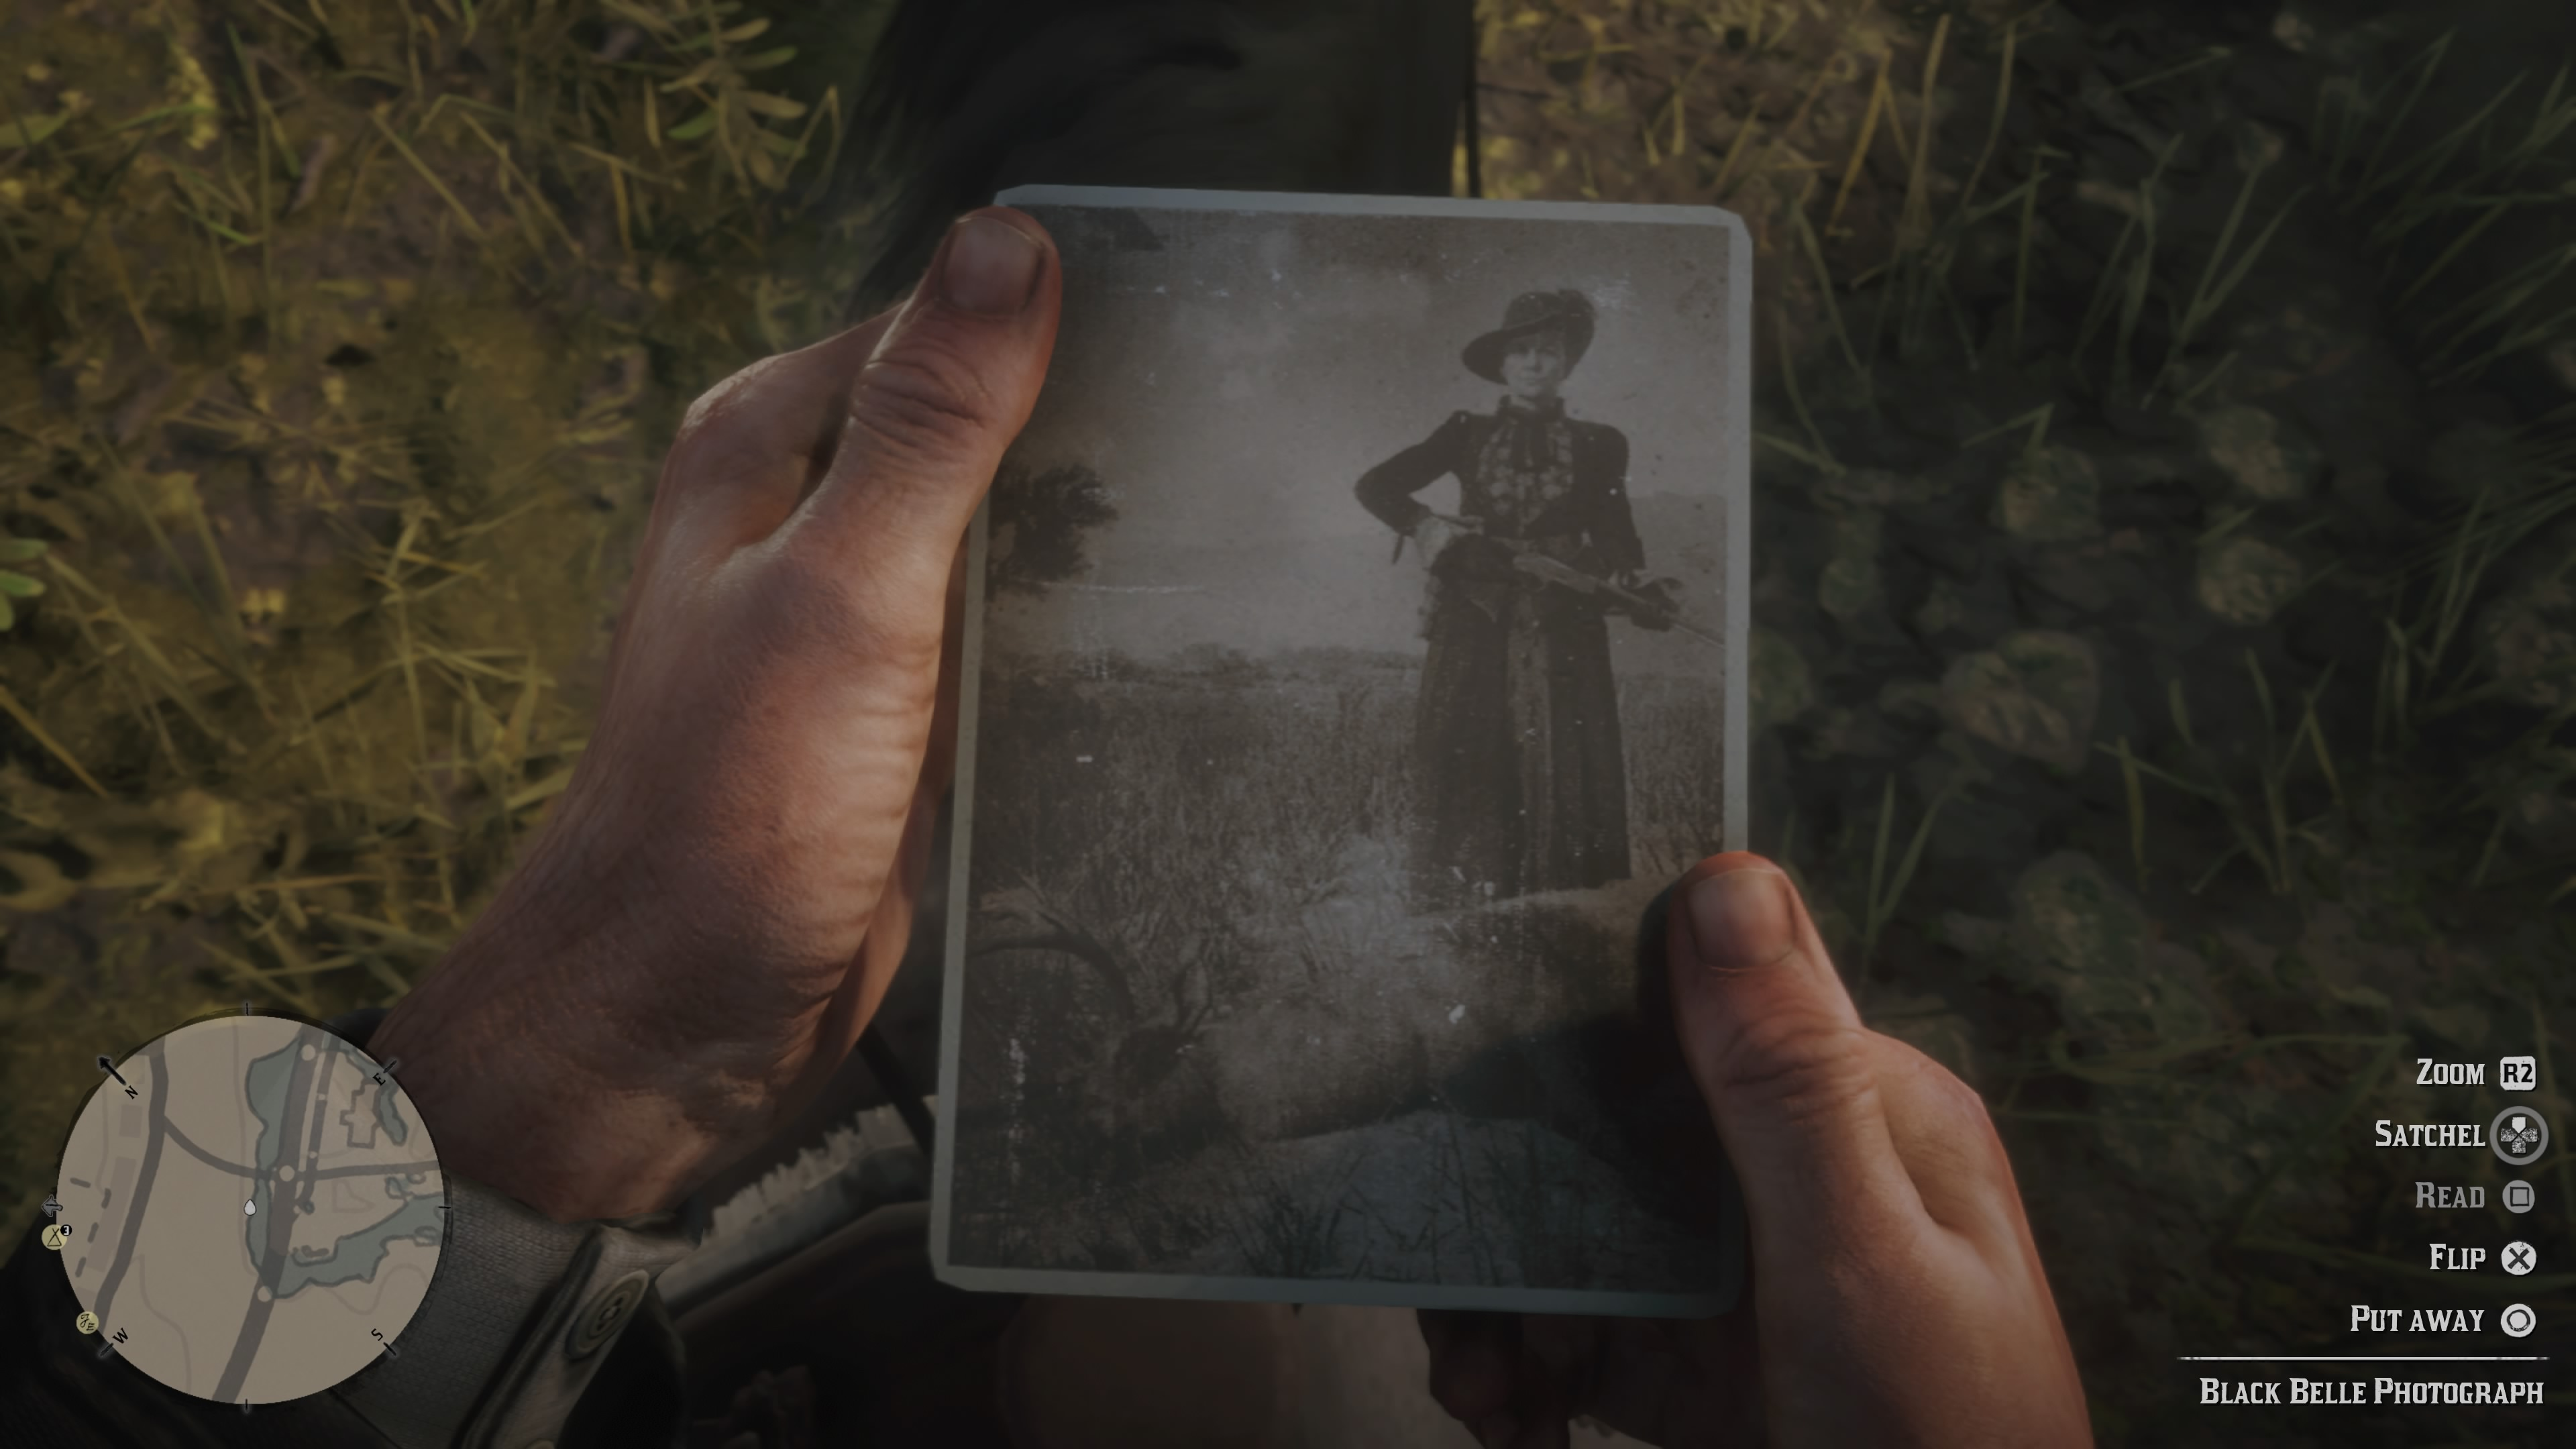 Red Dead Redemption 2 The Noblest of Men, and a Woman Wiki Guide 10